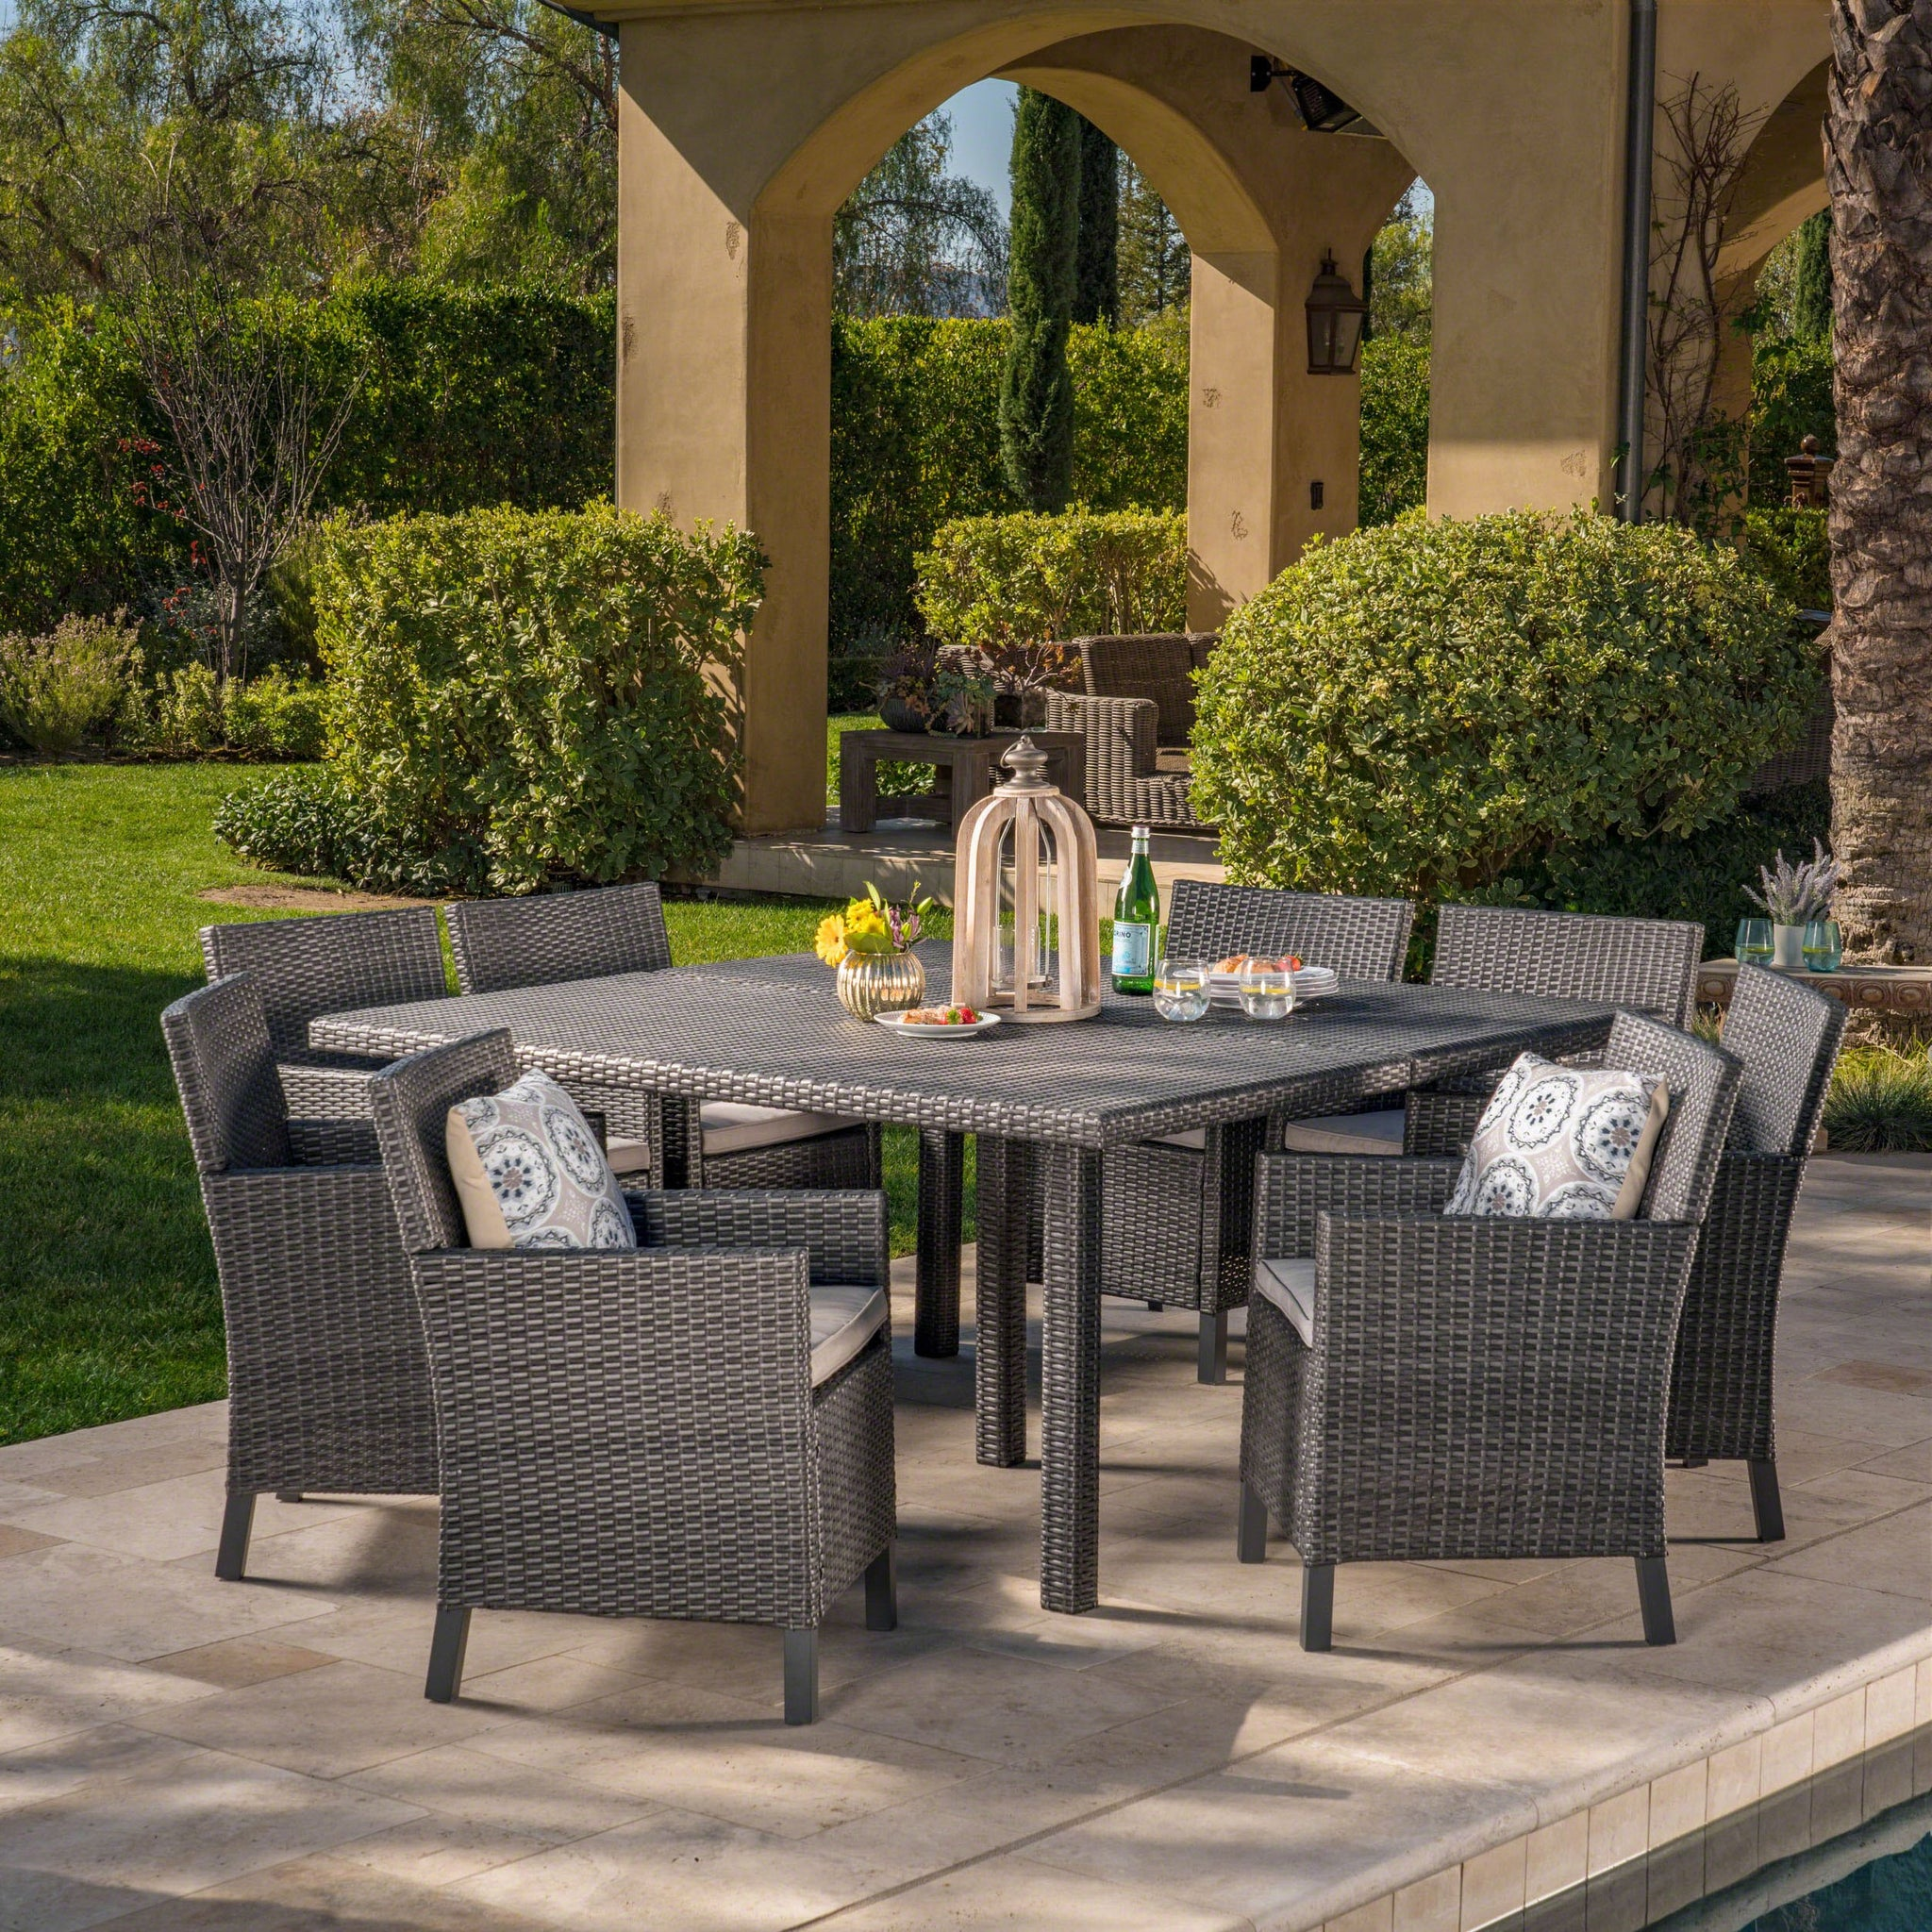 April Outdoor 9 Piece Wicker Square Dining Set With Water Resistant Cushions